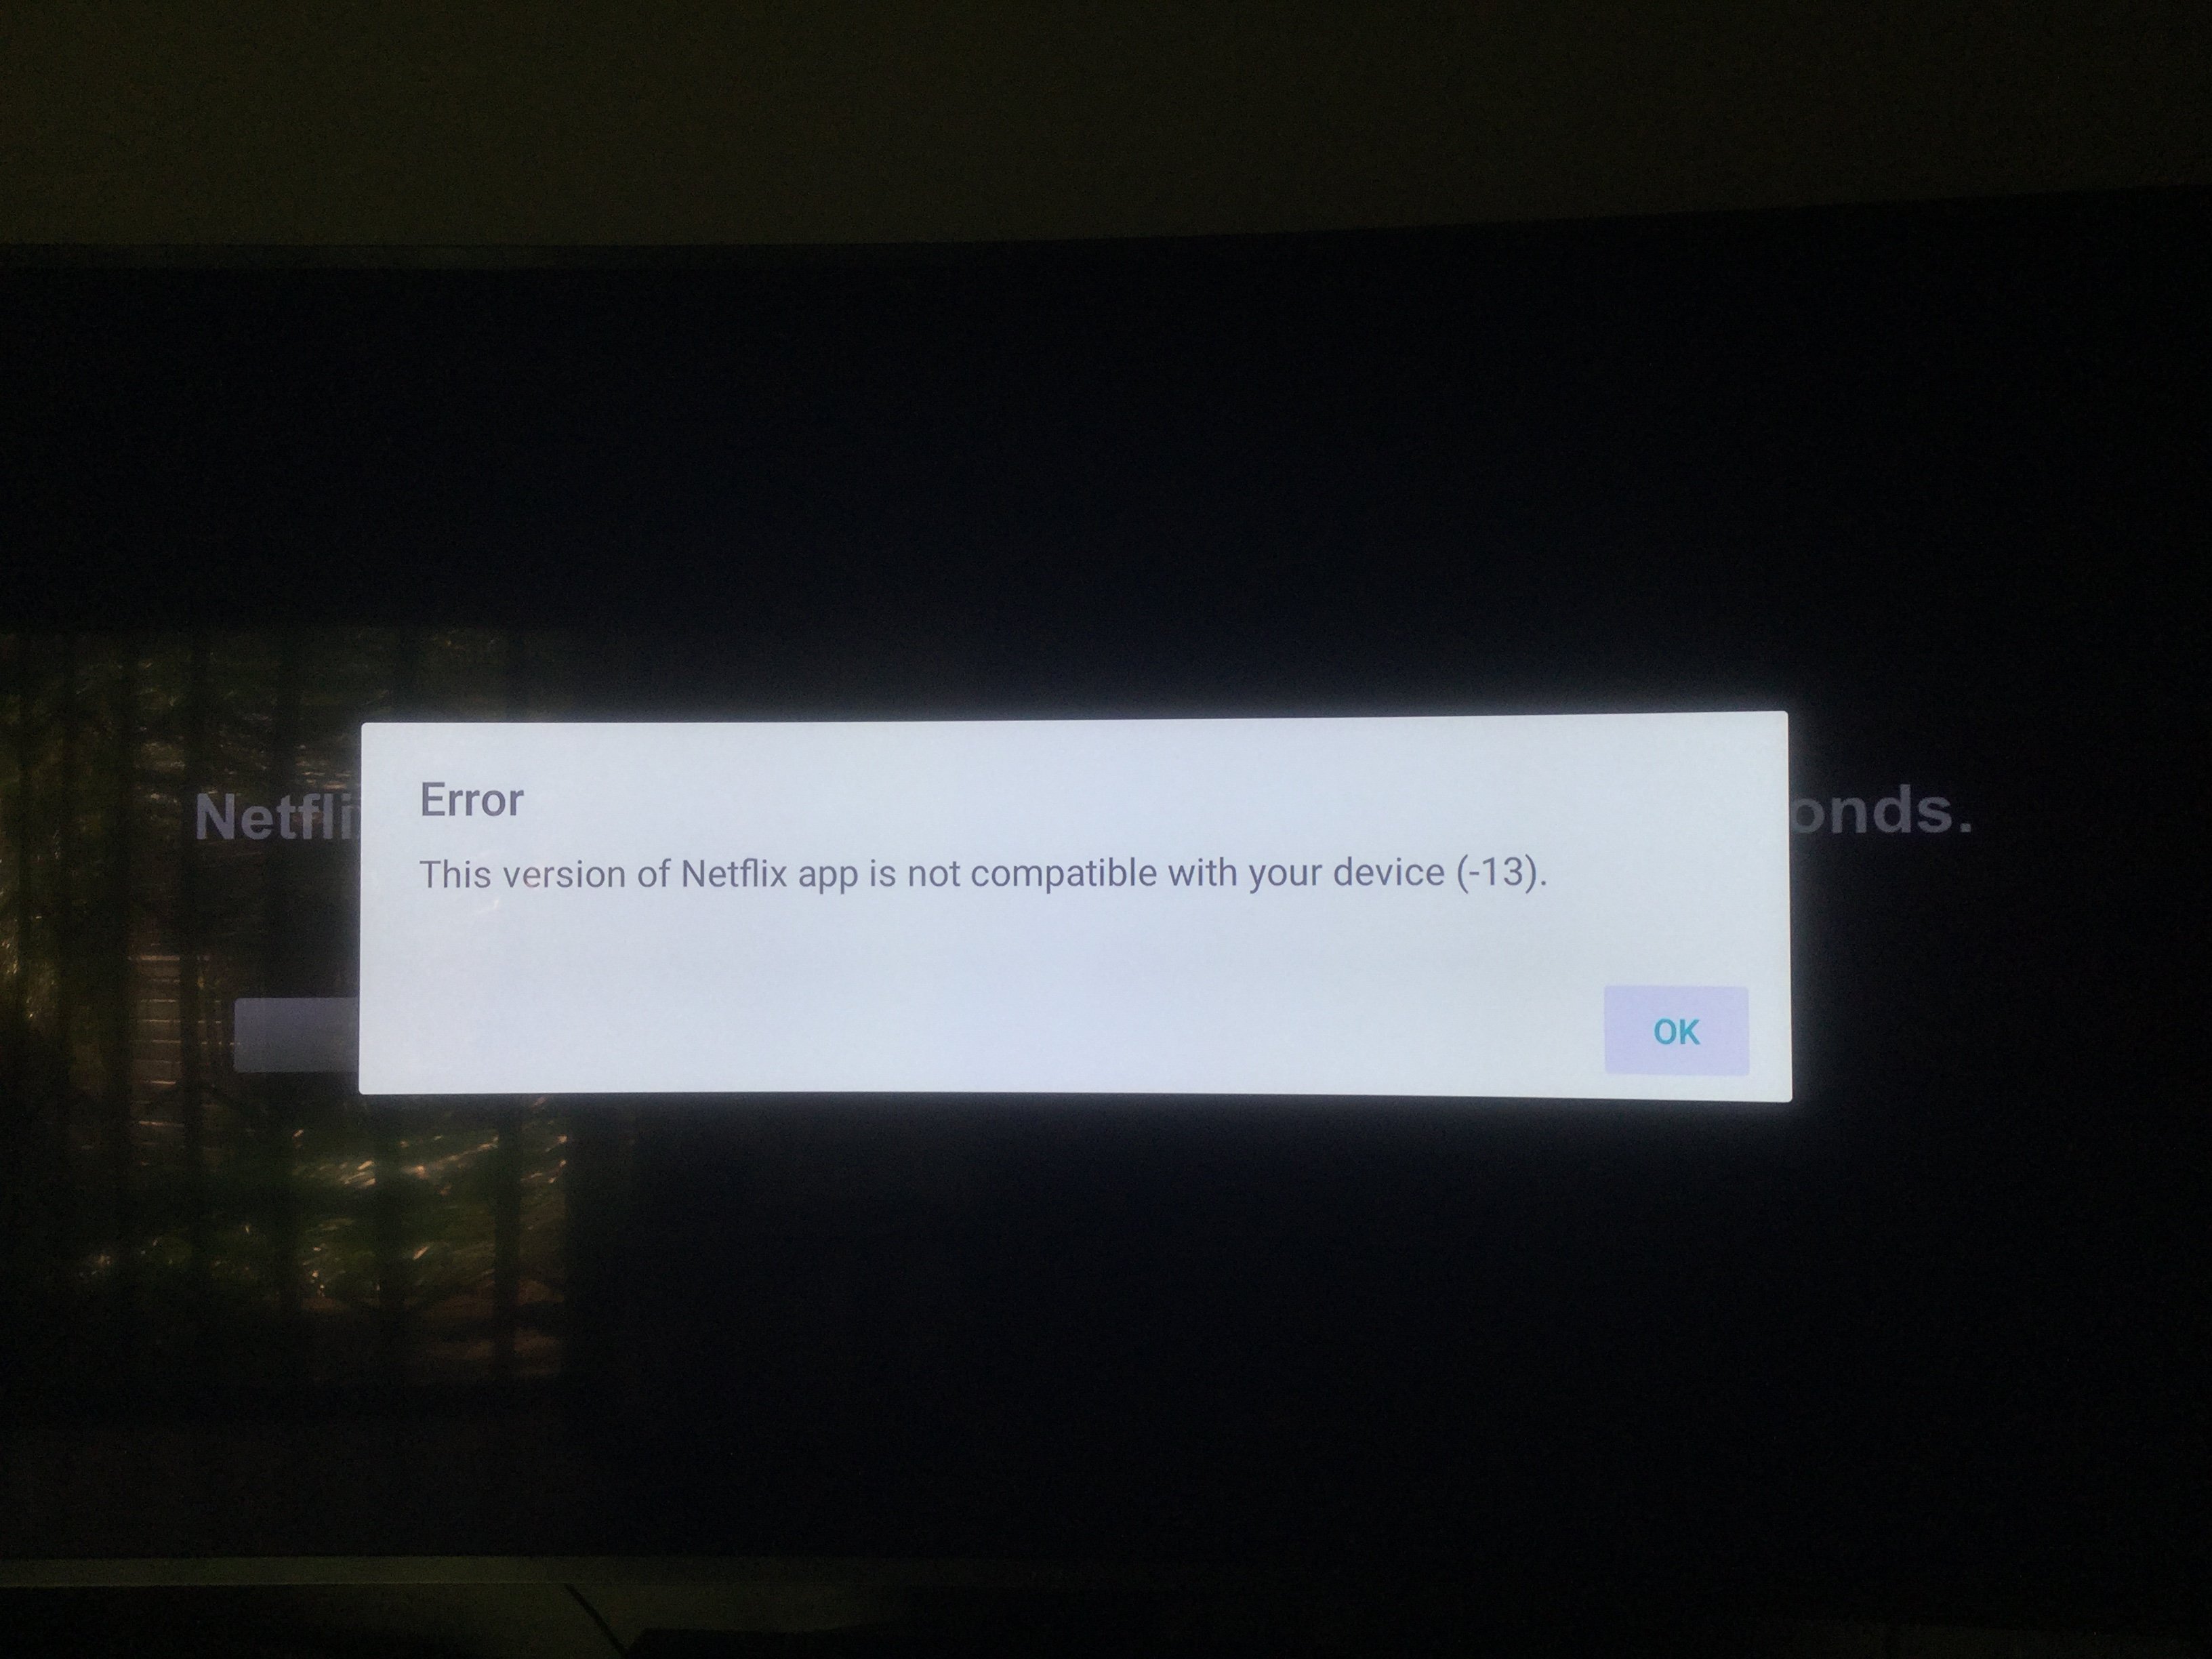 Cant play netflix latest version - MyGica Product Reviews